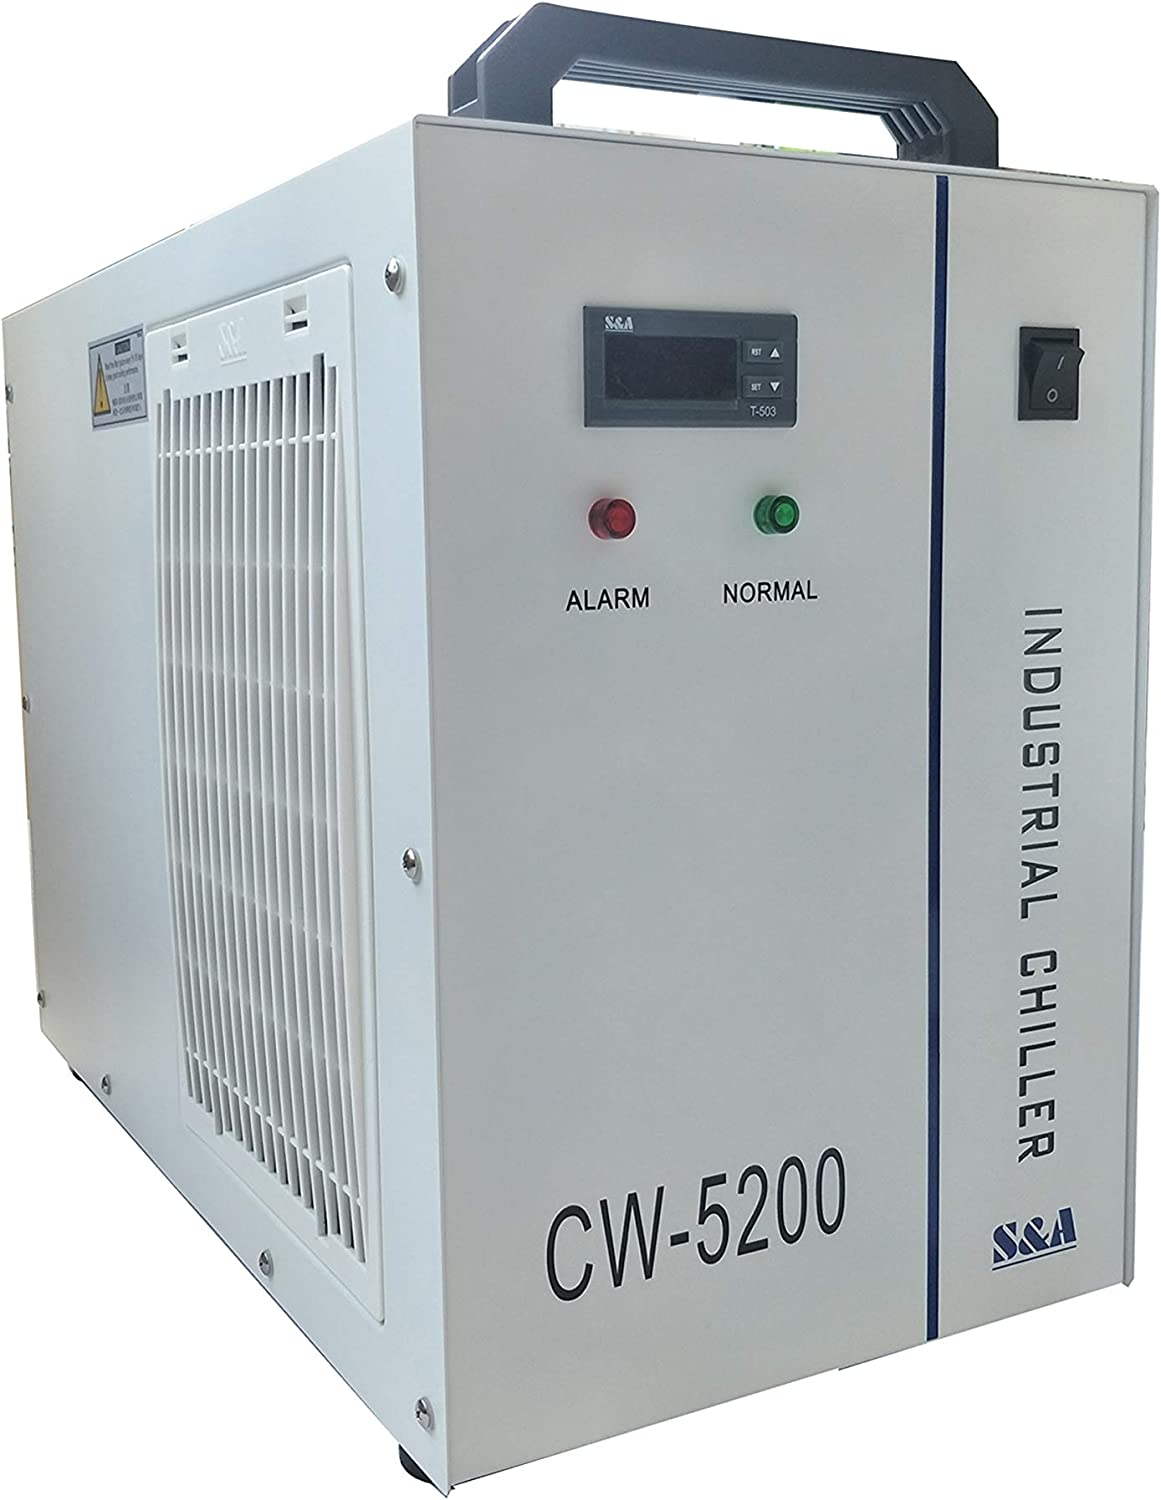 S&A Genuine CW-5200DH (5200DG upgraded) Industrial Water Chiller 6L Capacity Cooling Water for 80W-150W CO2 Engraving Cutting Machine